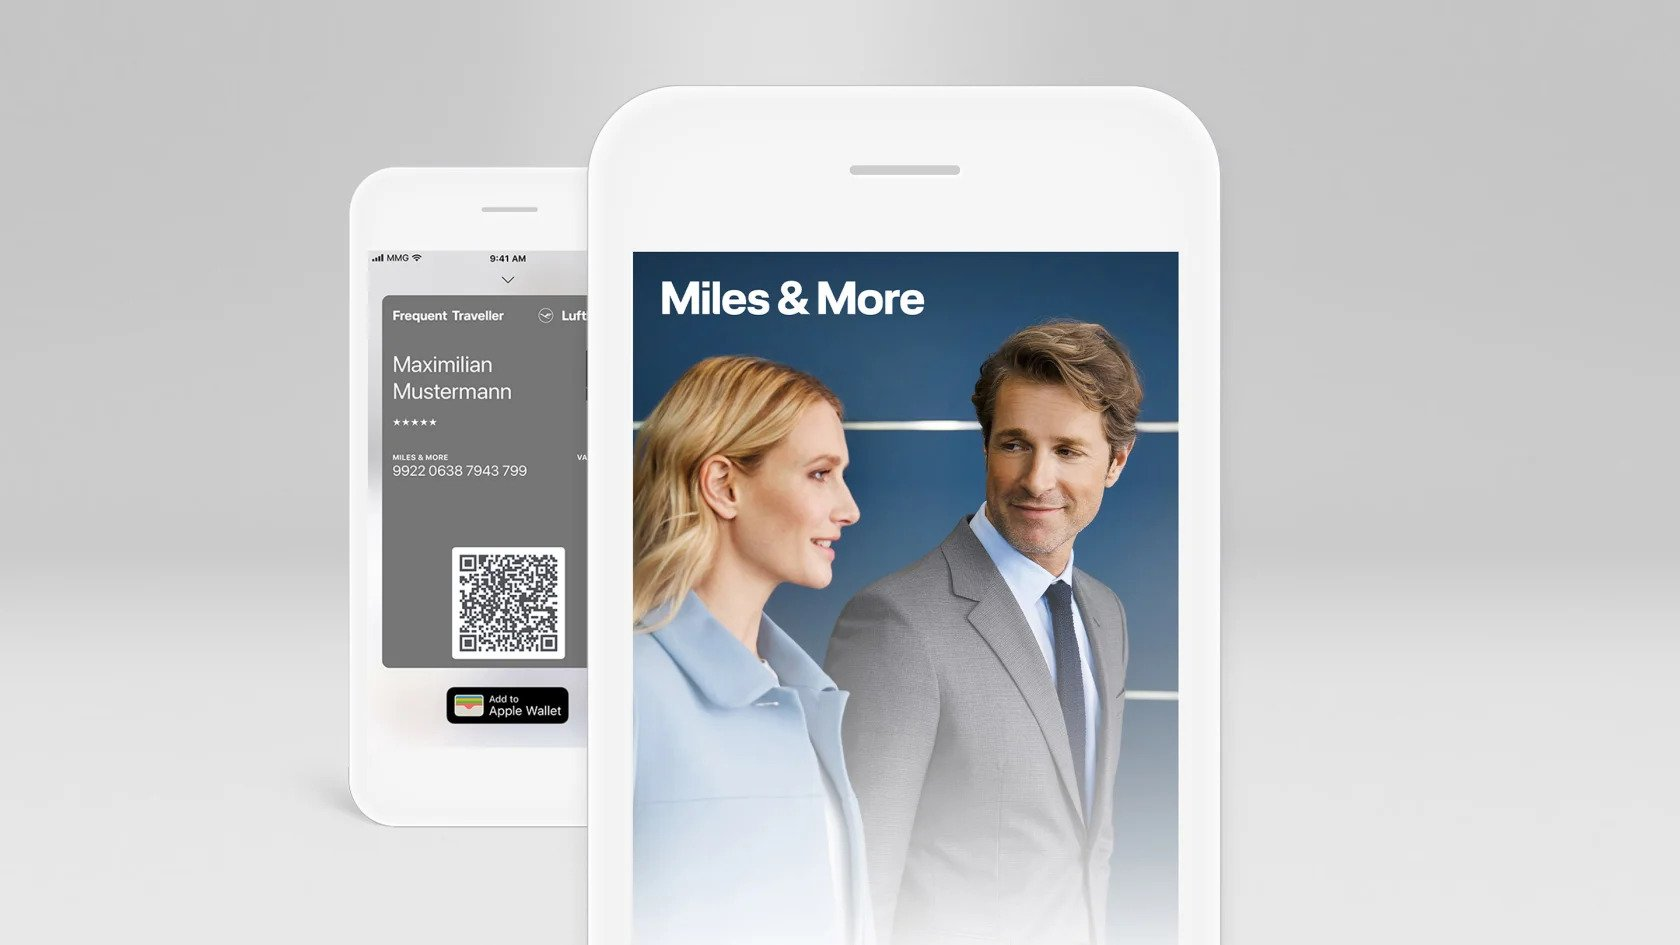 500 free miles with Lufthansa Miles and More app